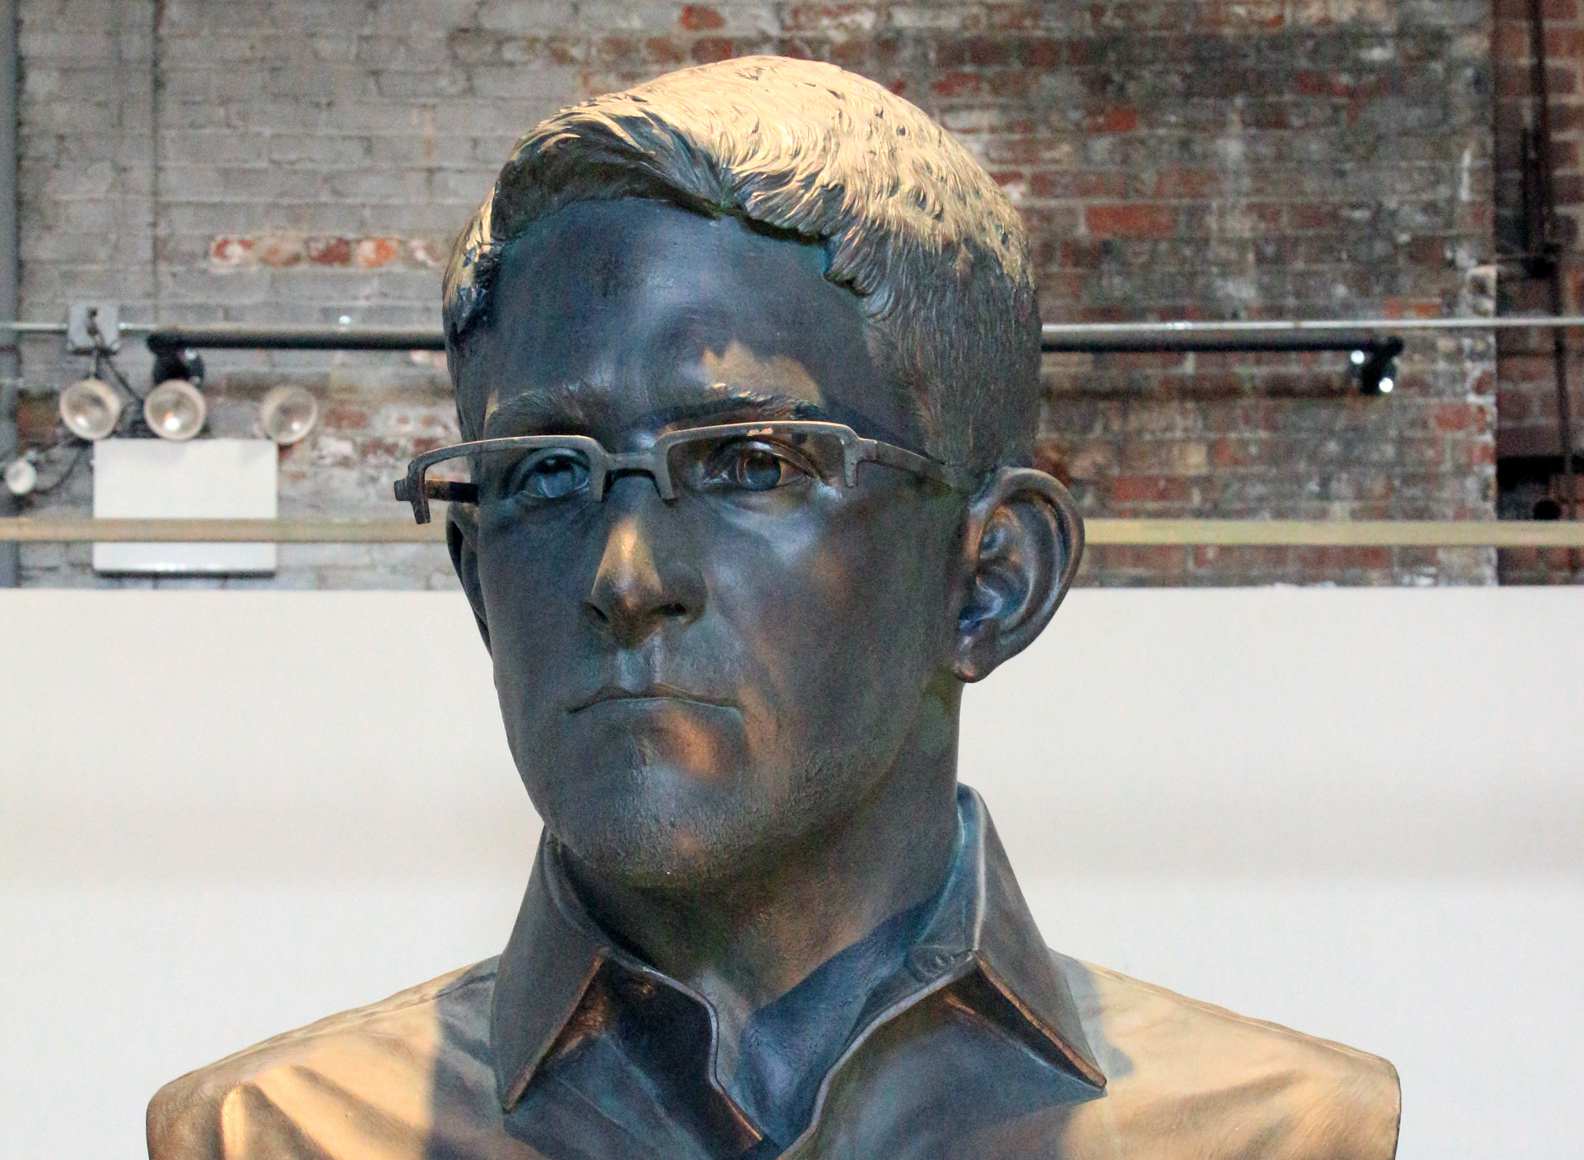 Infamous Edward Snowden bust heading to a show at the Brooklyn Museum